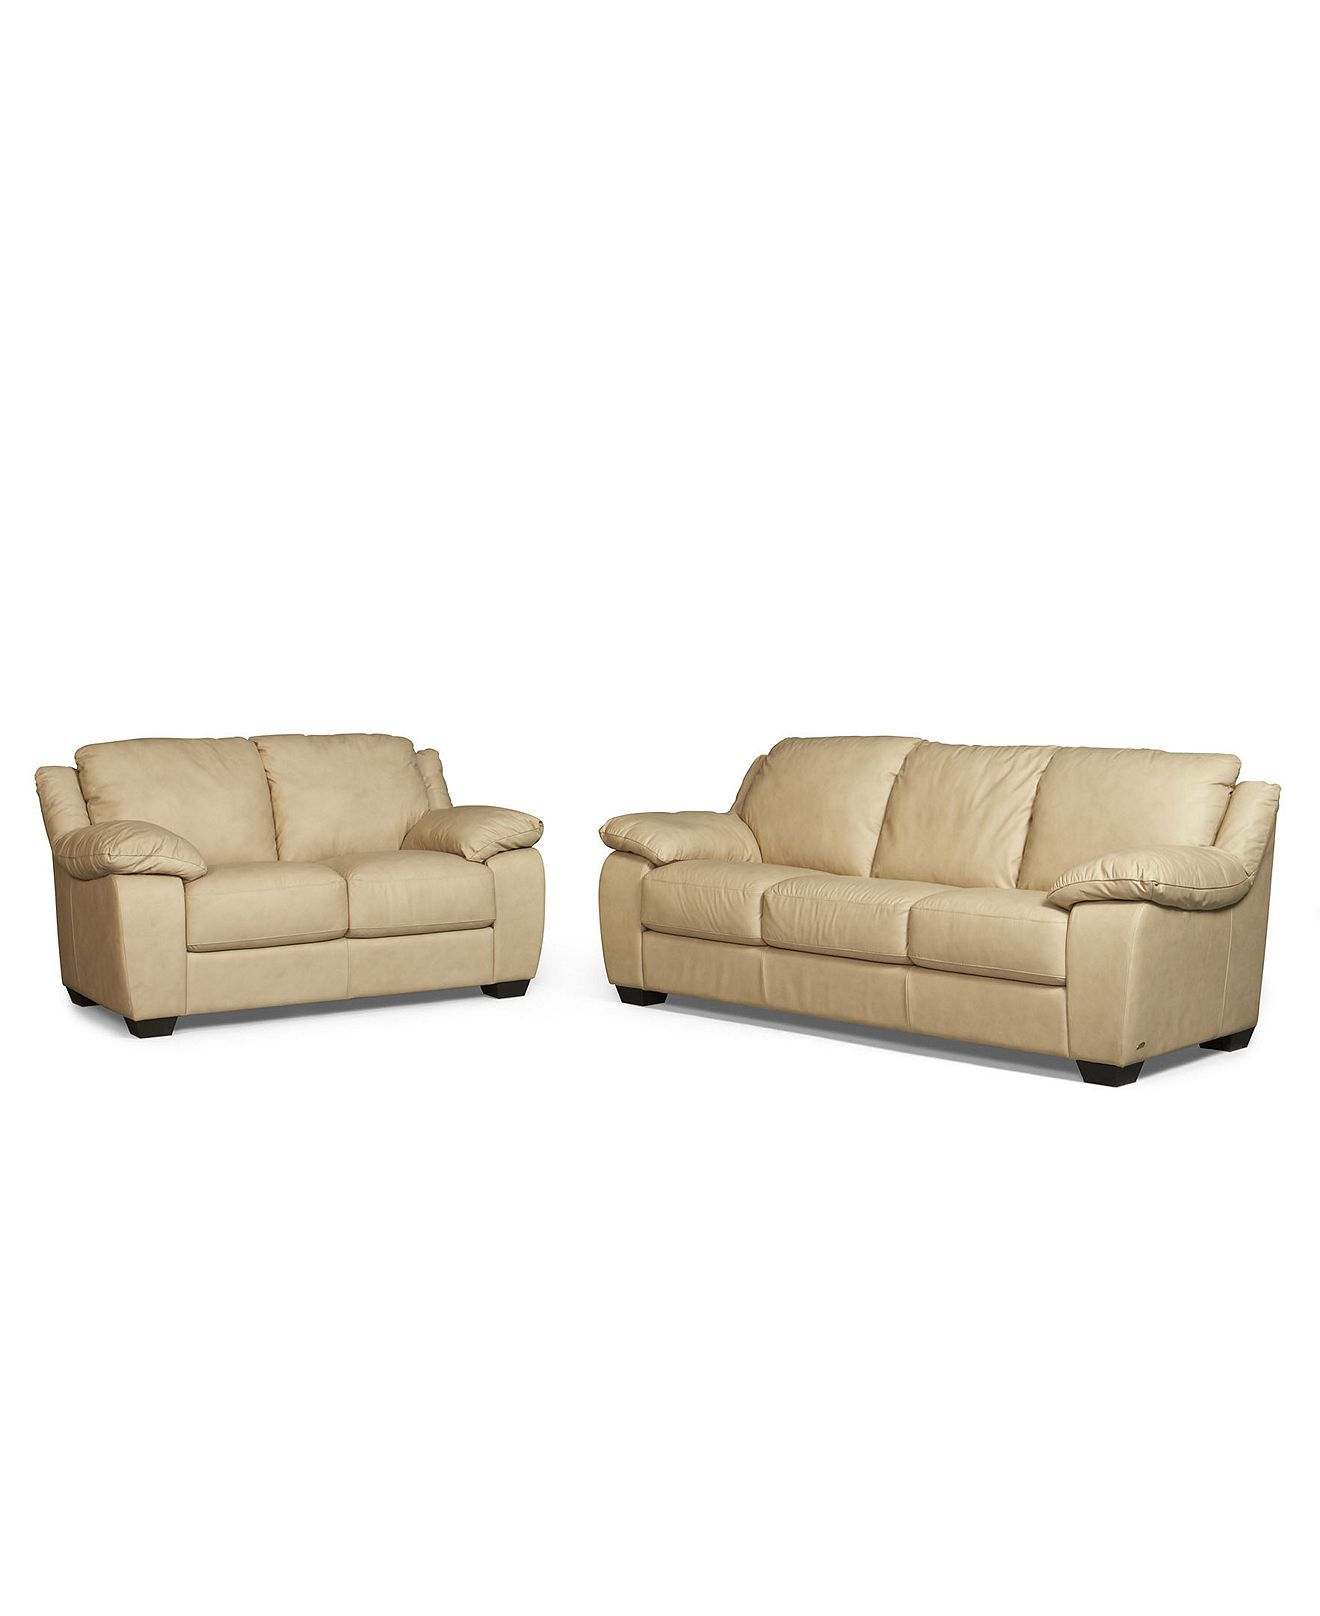 amalfi sofa macys down filled sectional blair 2 piece leather set and loveseat www